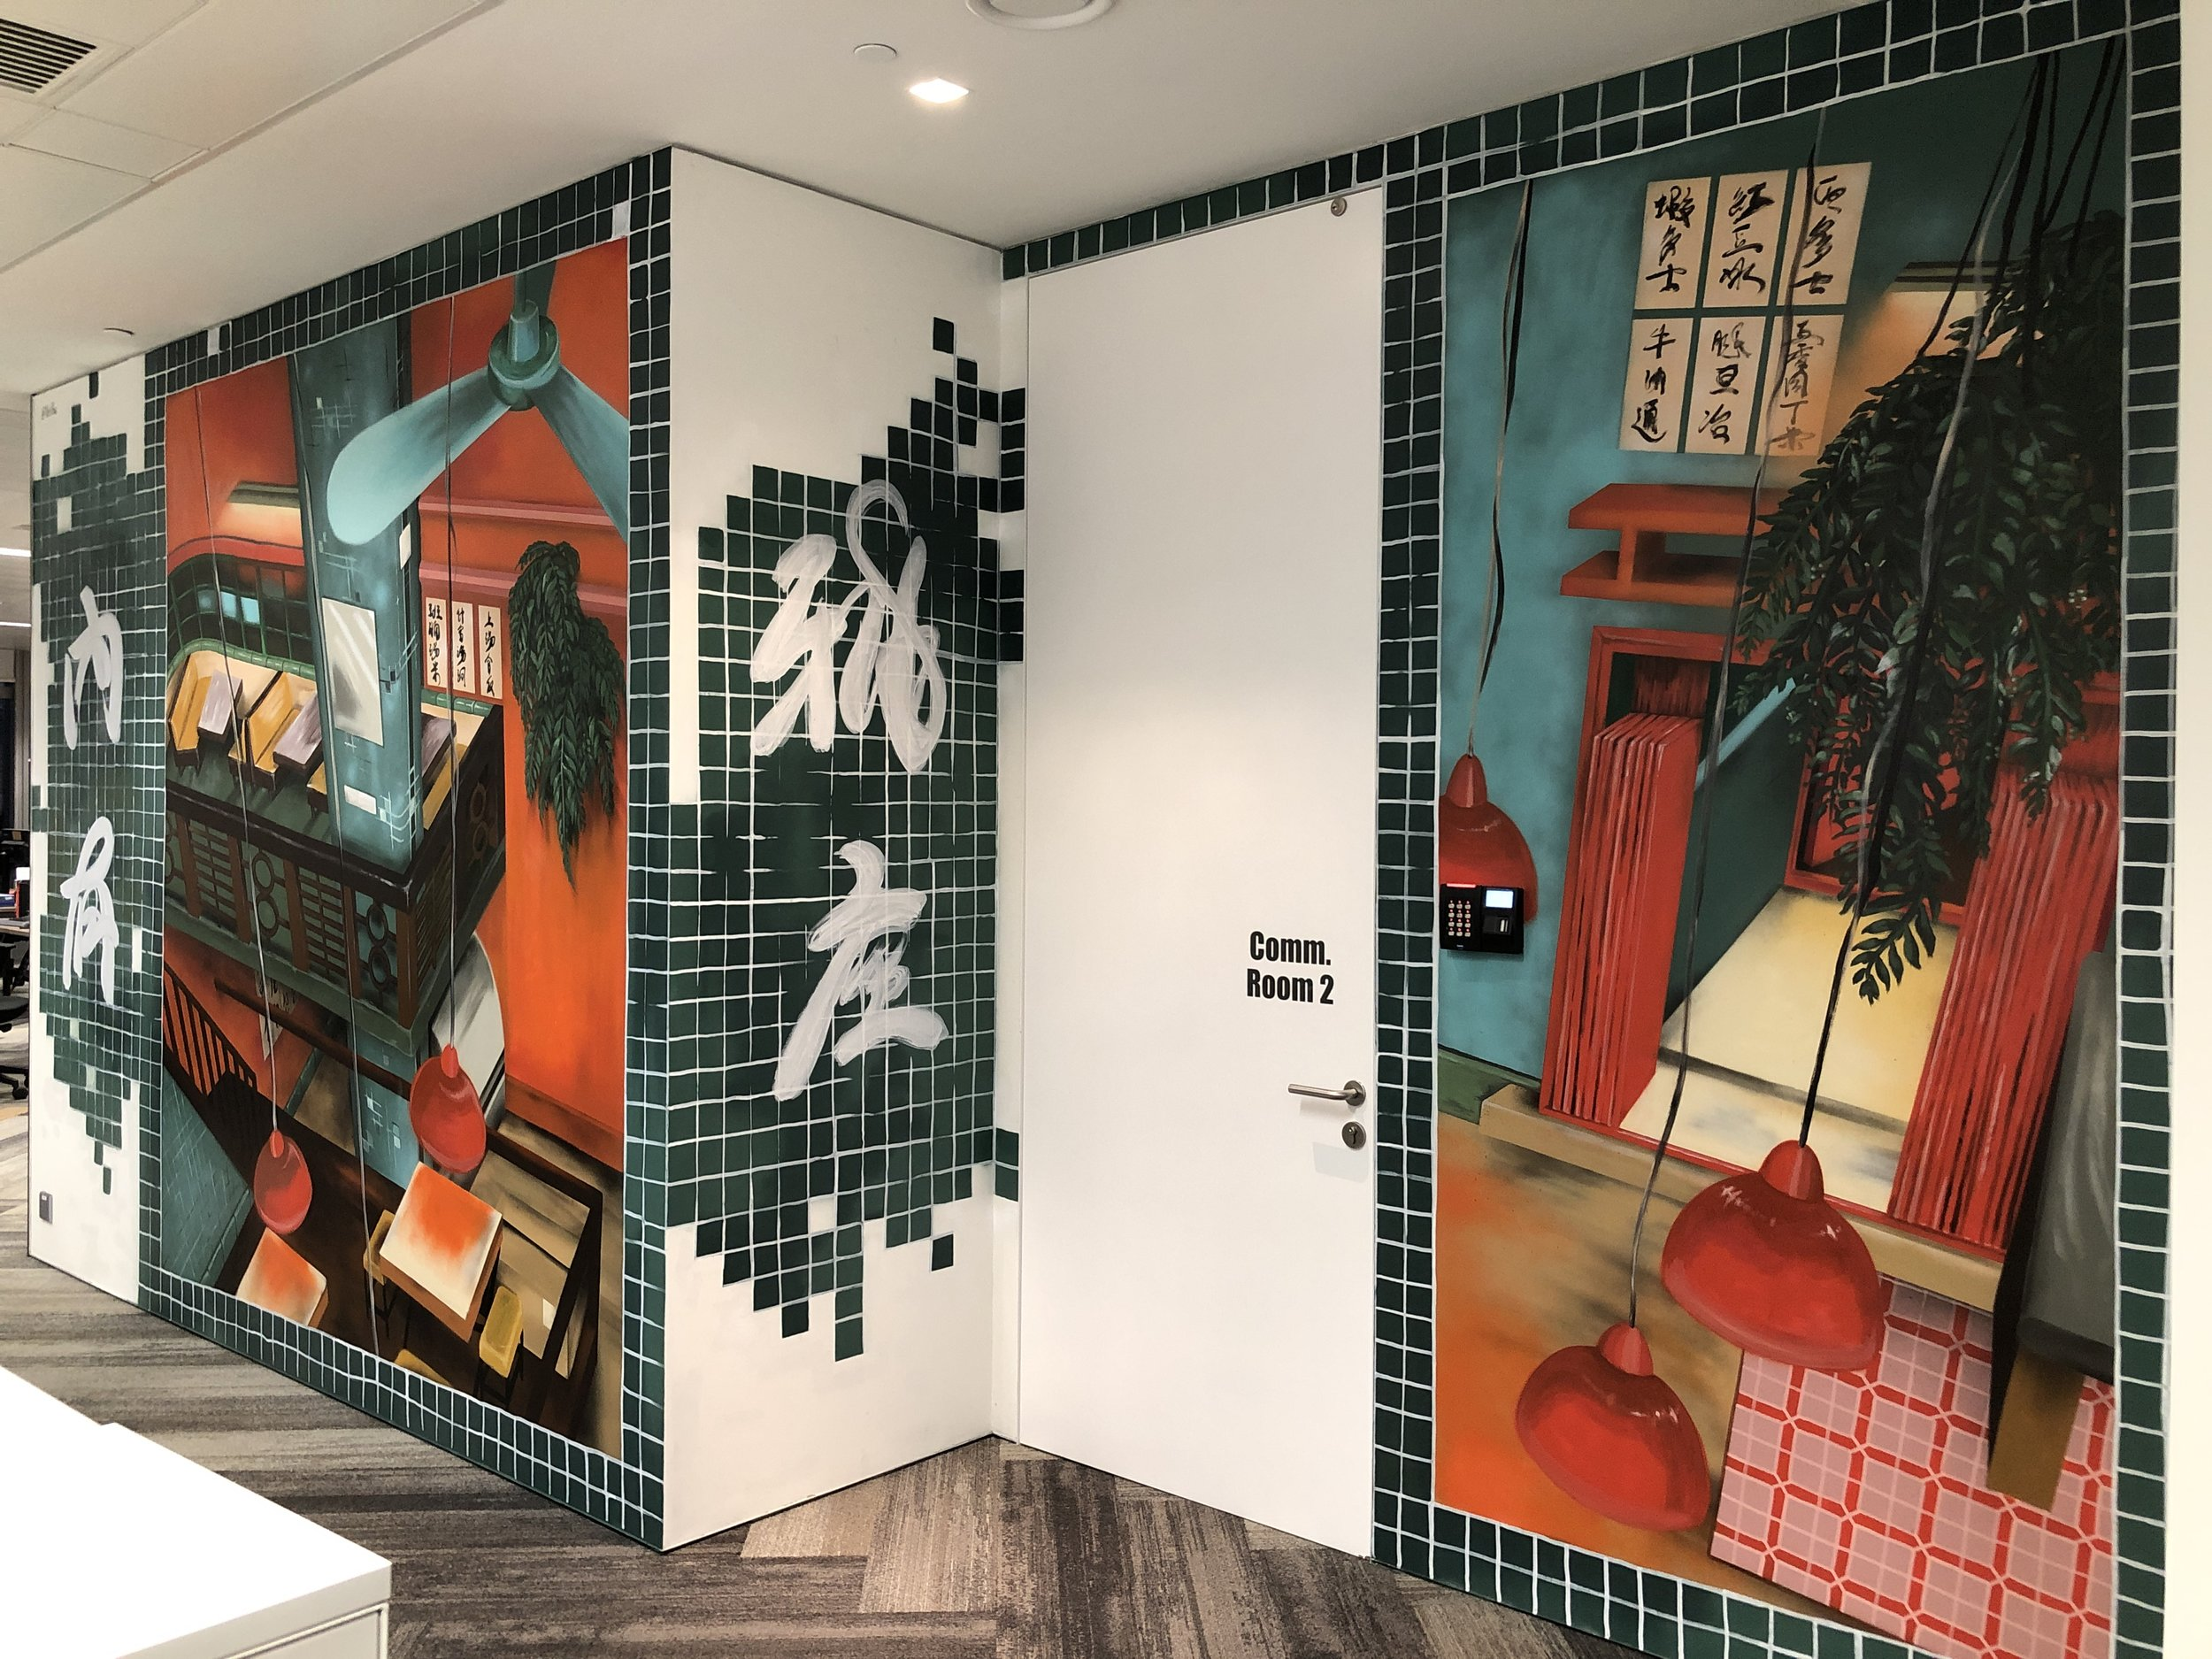 DBS HKG - Office Mural - Café illusion(2019)